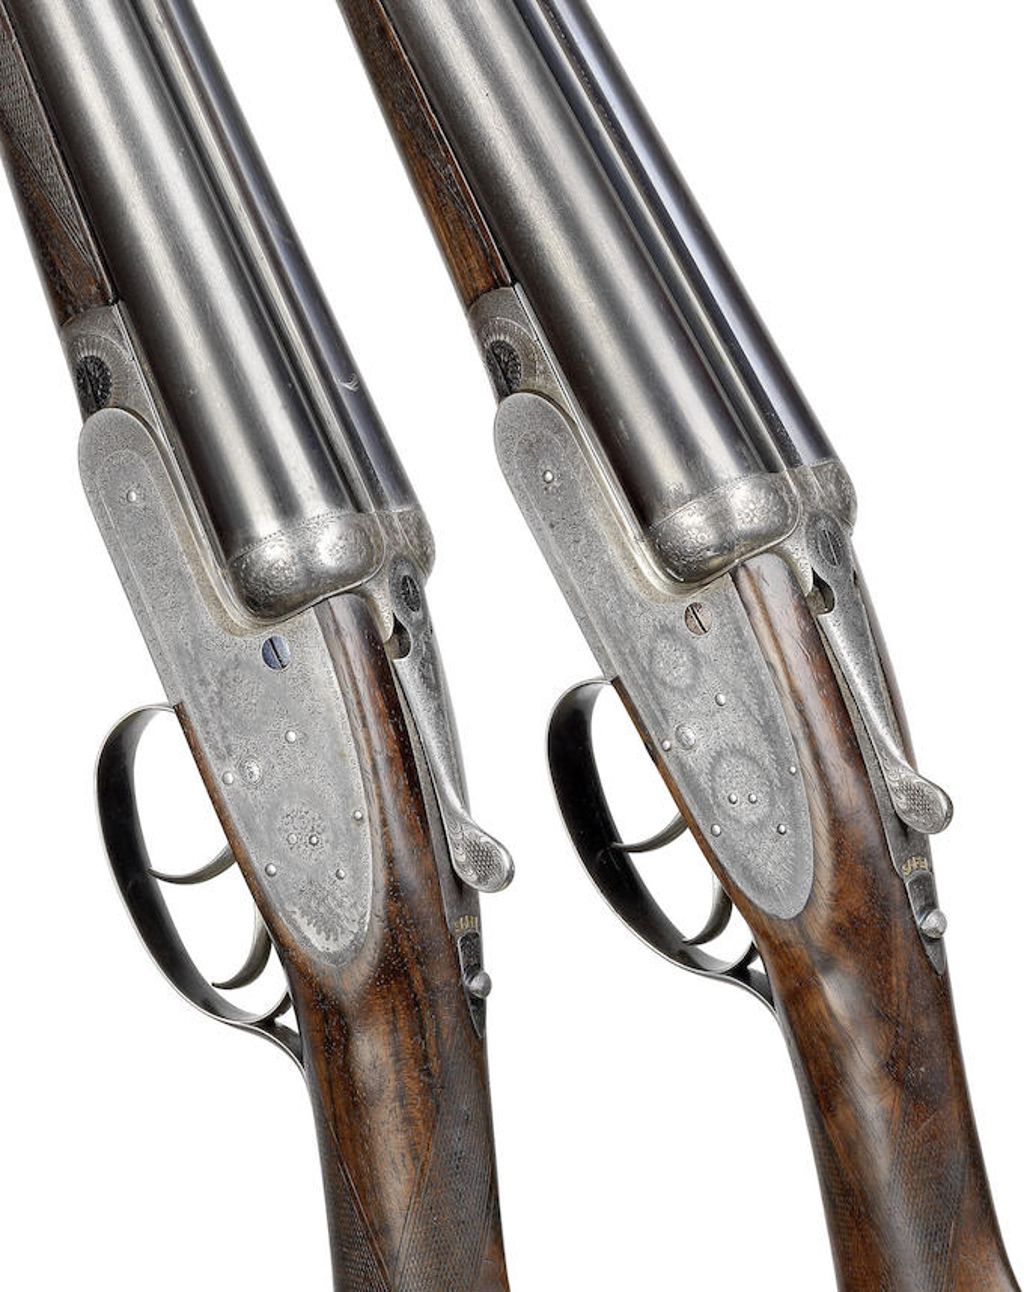 A pair of 12-bore self-opening sidelock ejector guns by J. Purdey & Sons, no. 15824-5